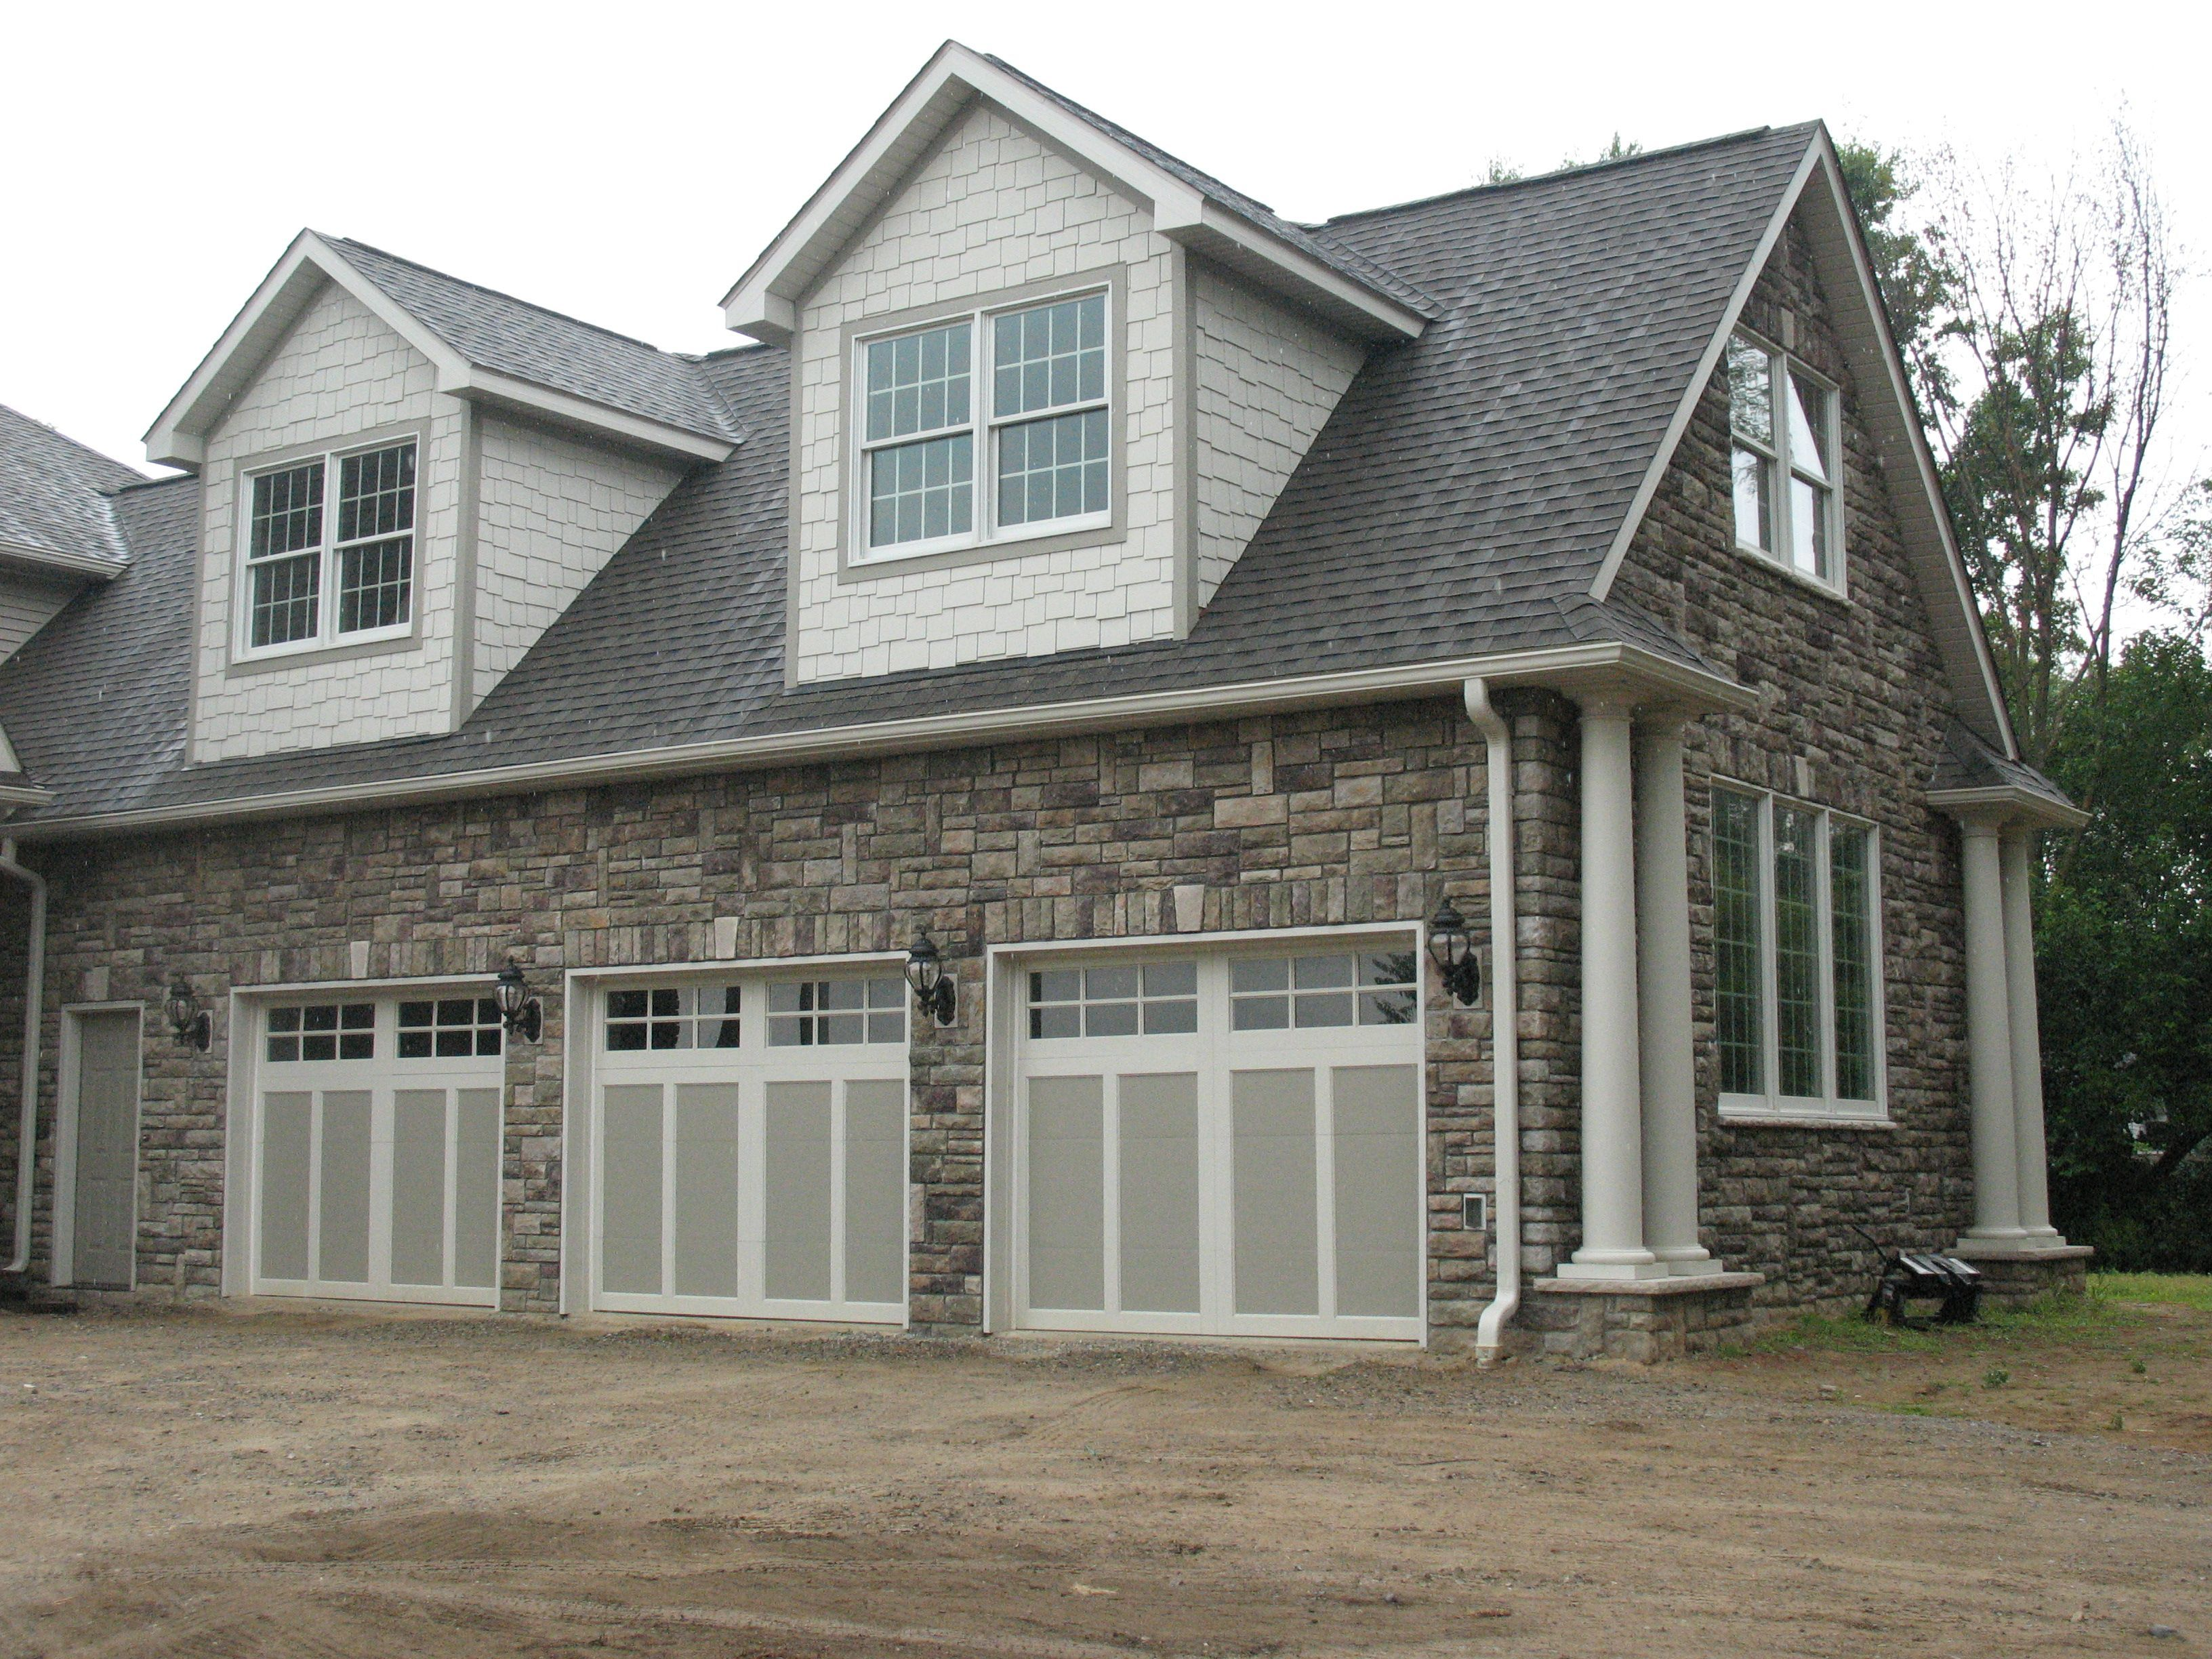 Airstone Home Depot Airstone Tile Artificial Brick Siding Artificial Brick Stone Artificial Exterior Stone A House Exterior Ranch Style Home Stone Vinyl Siding